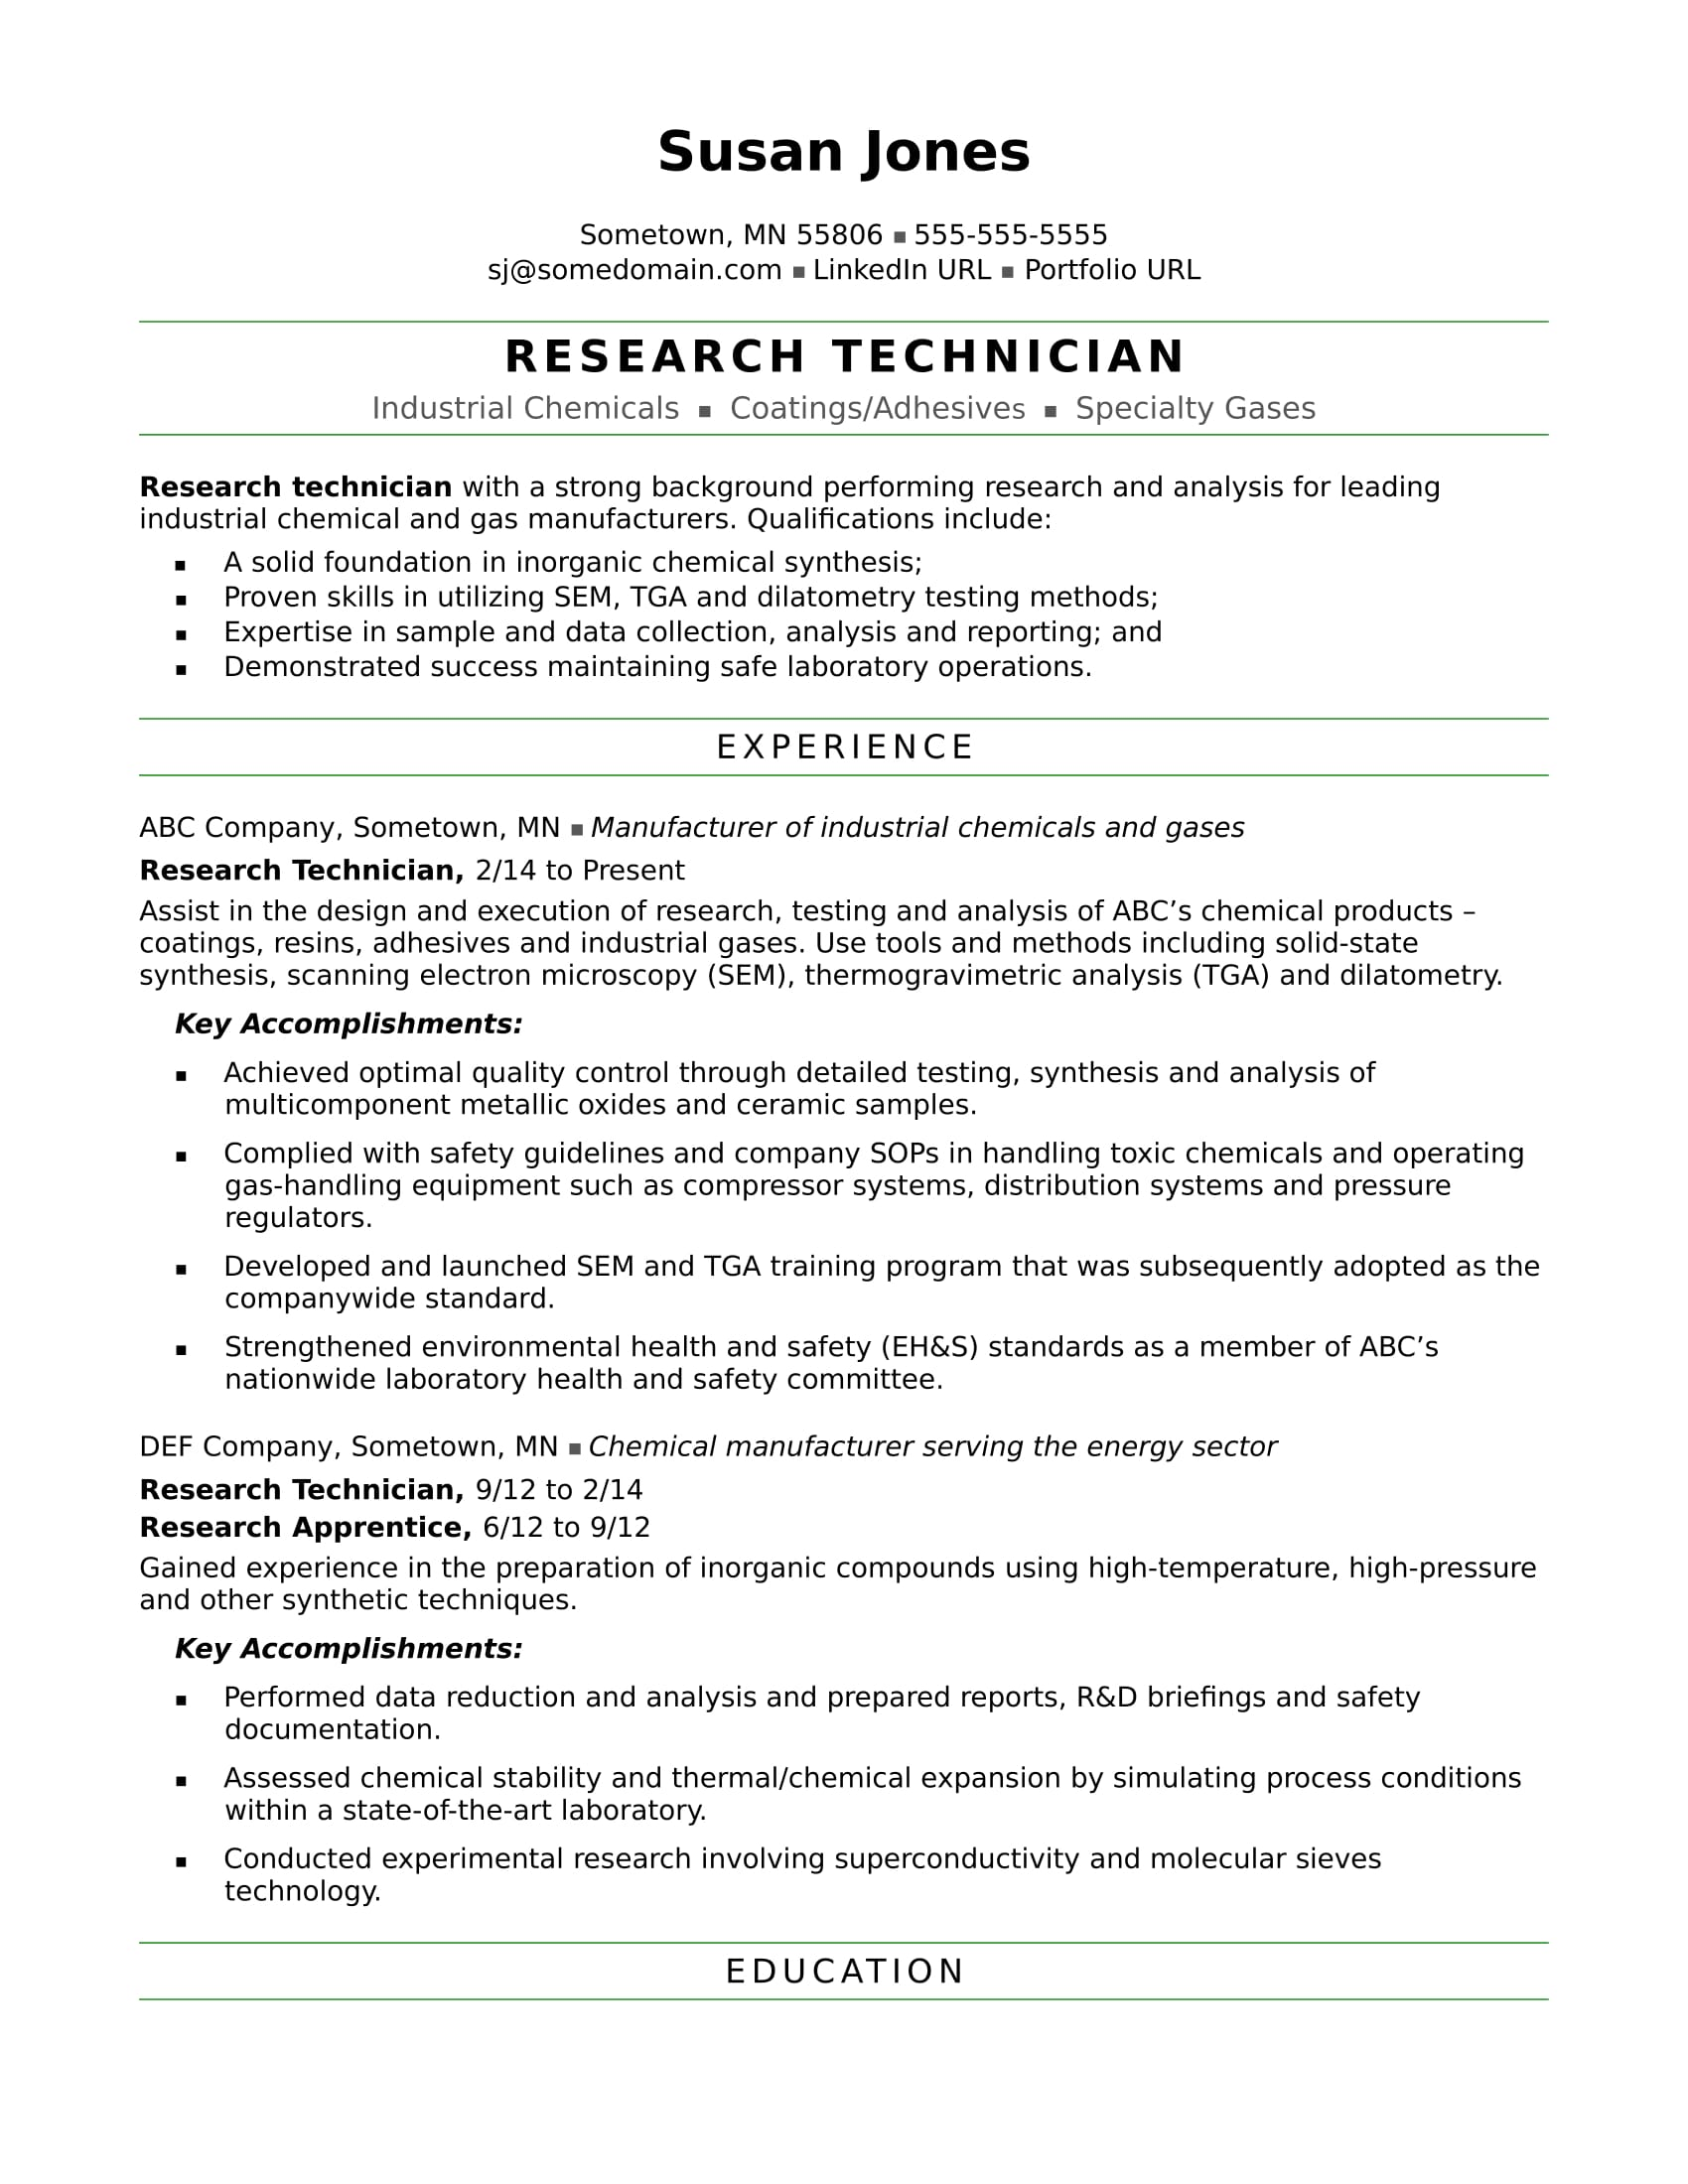 research technician resume sample monster with experience midlevel best engineering Resume Resume With Research Experience